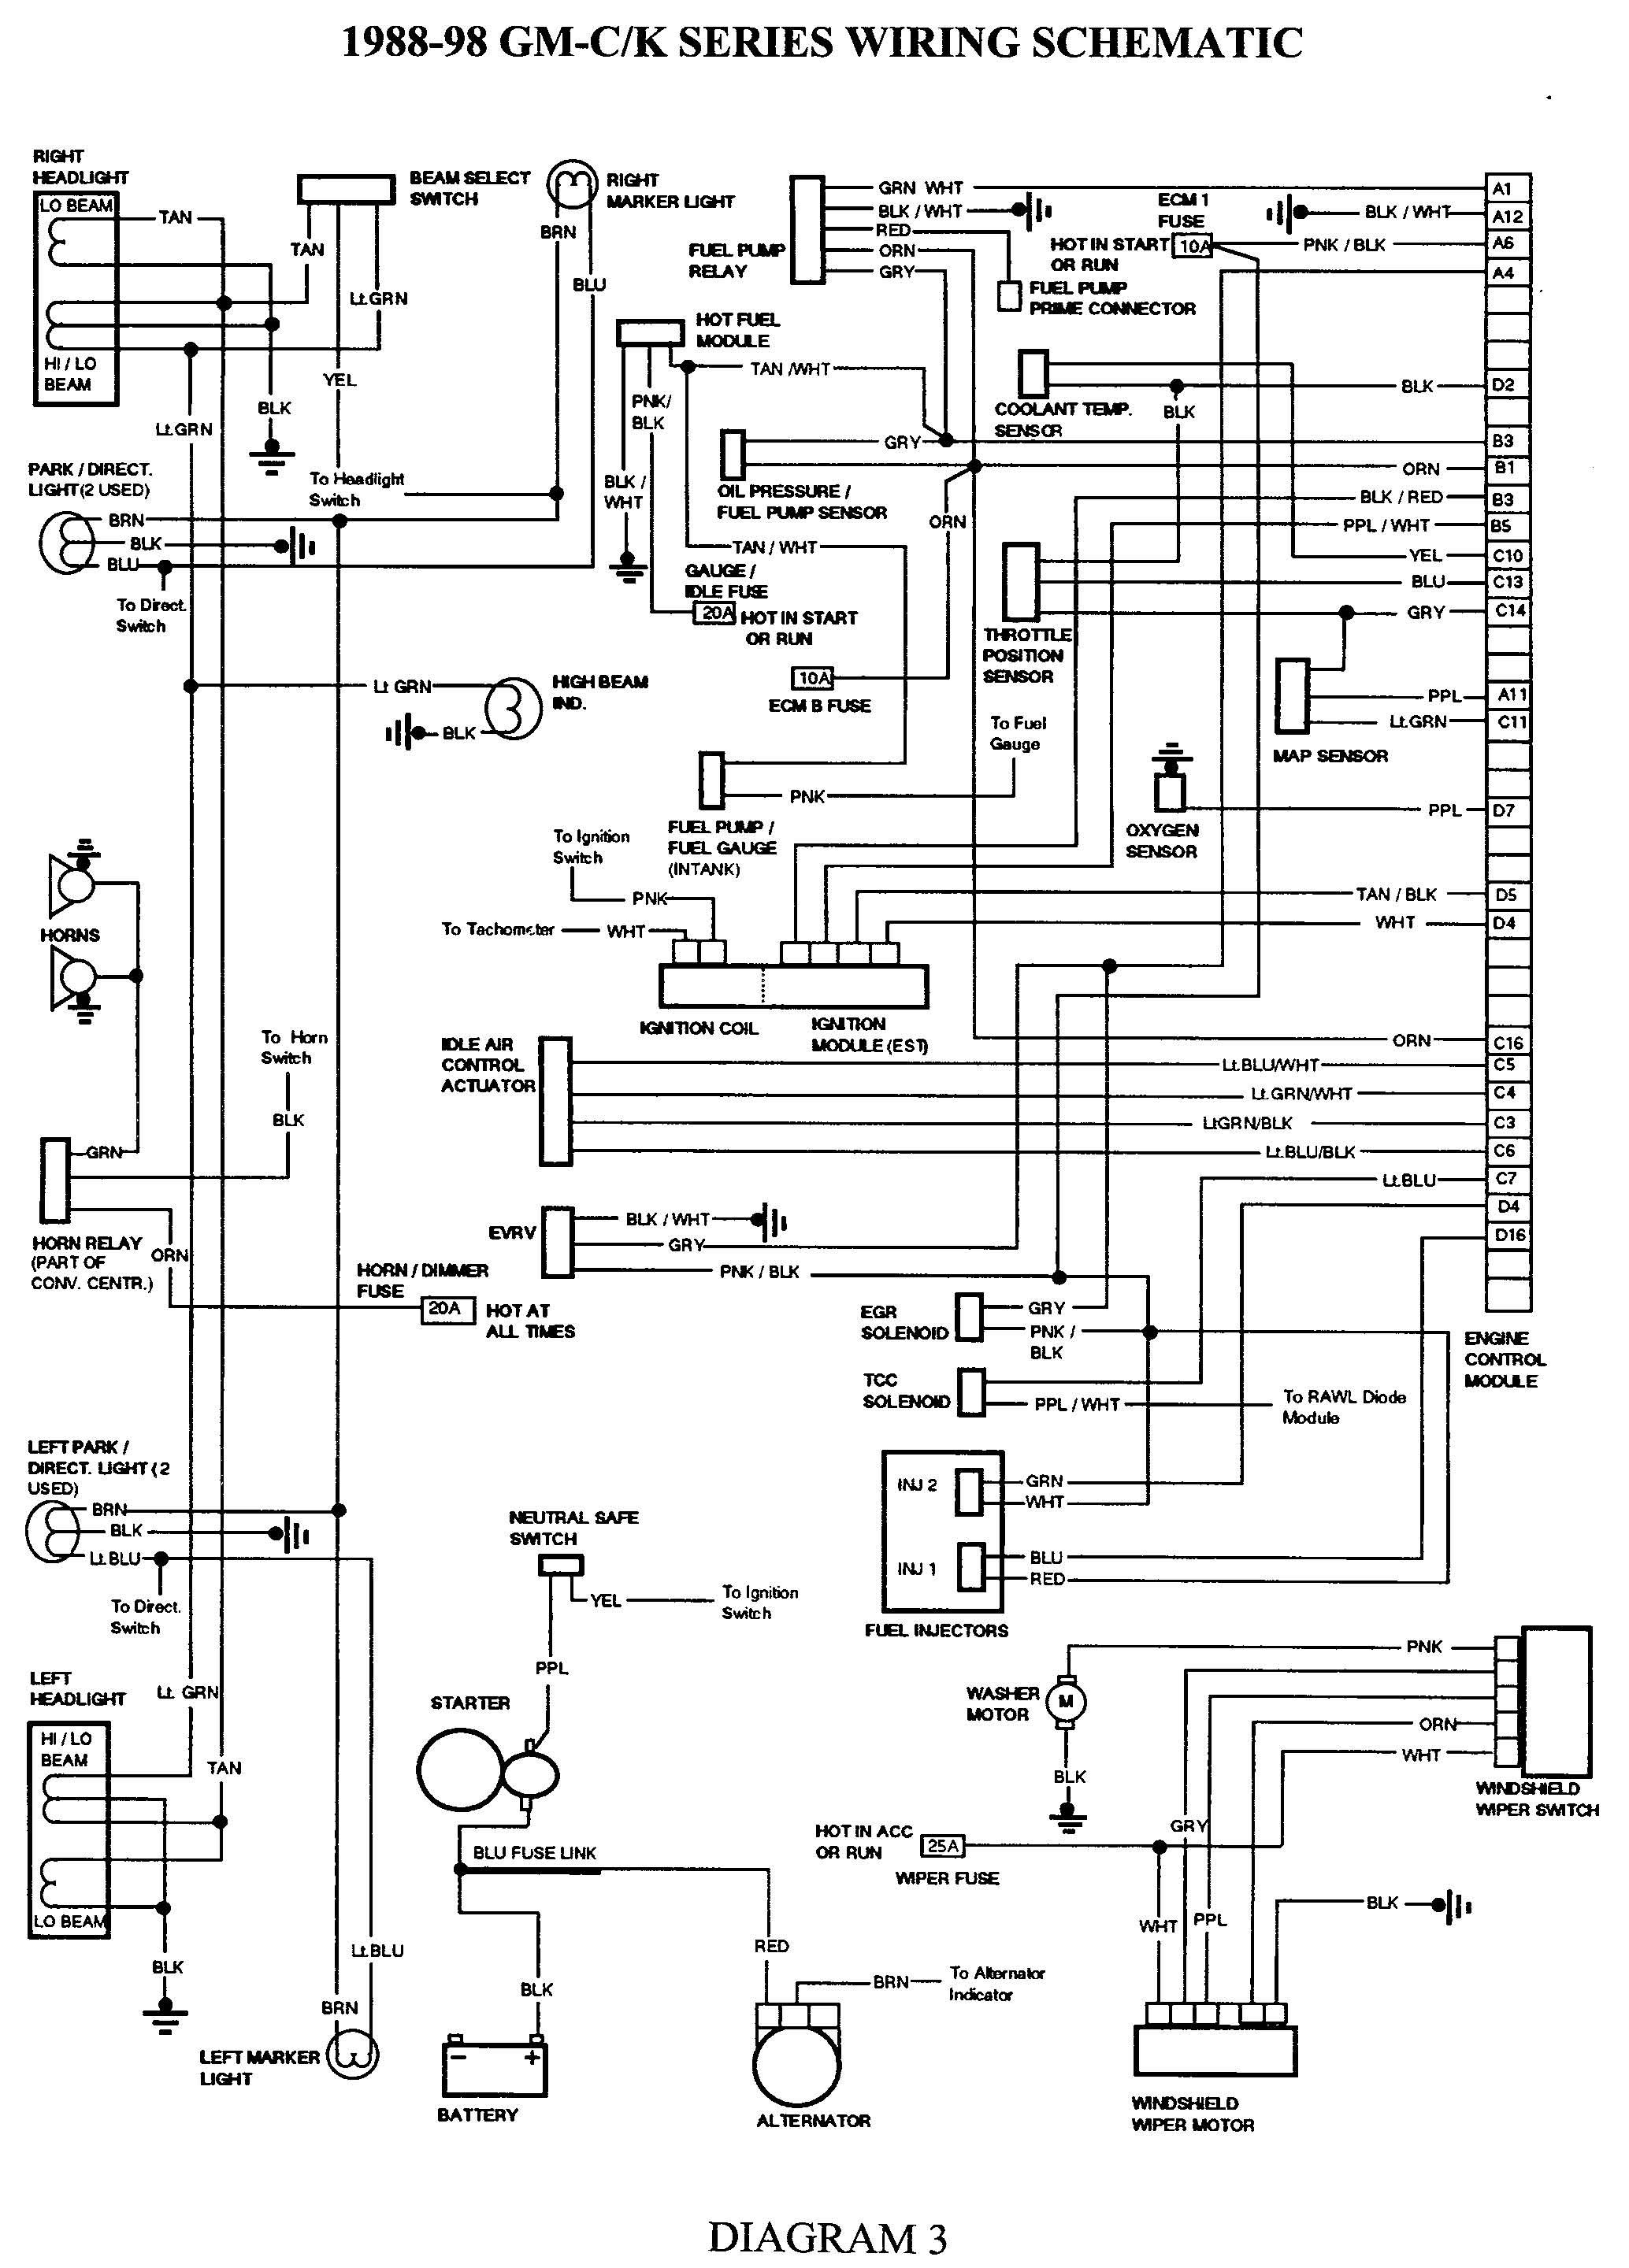 gmc truck wiring diagrams on gm wiring harness diagram 88 98 kc 1991 GMC Sierra 2500 Wiring Diagram gmc truck wiring diagrams on gm wiring harness diagram 88 98